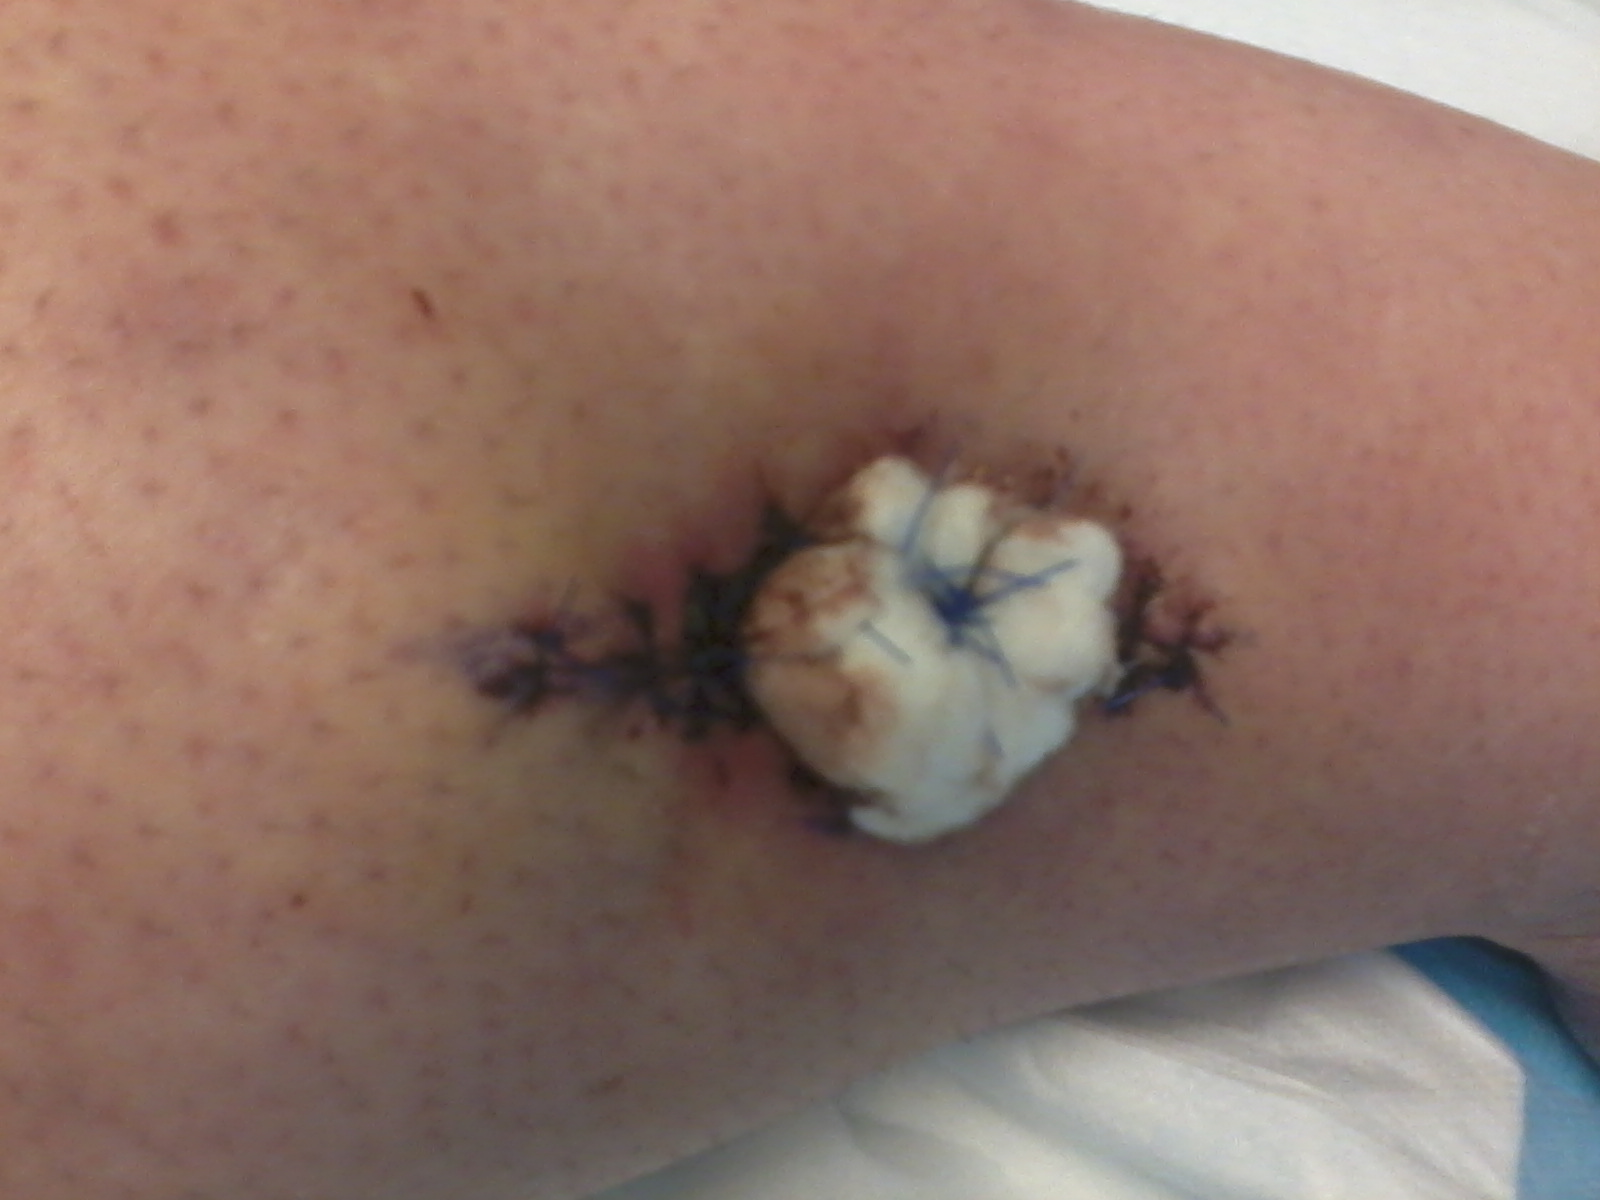 This is a picture of my leg where I had my recent surgery. Gross, huh?